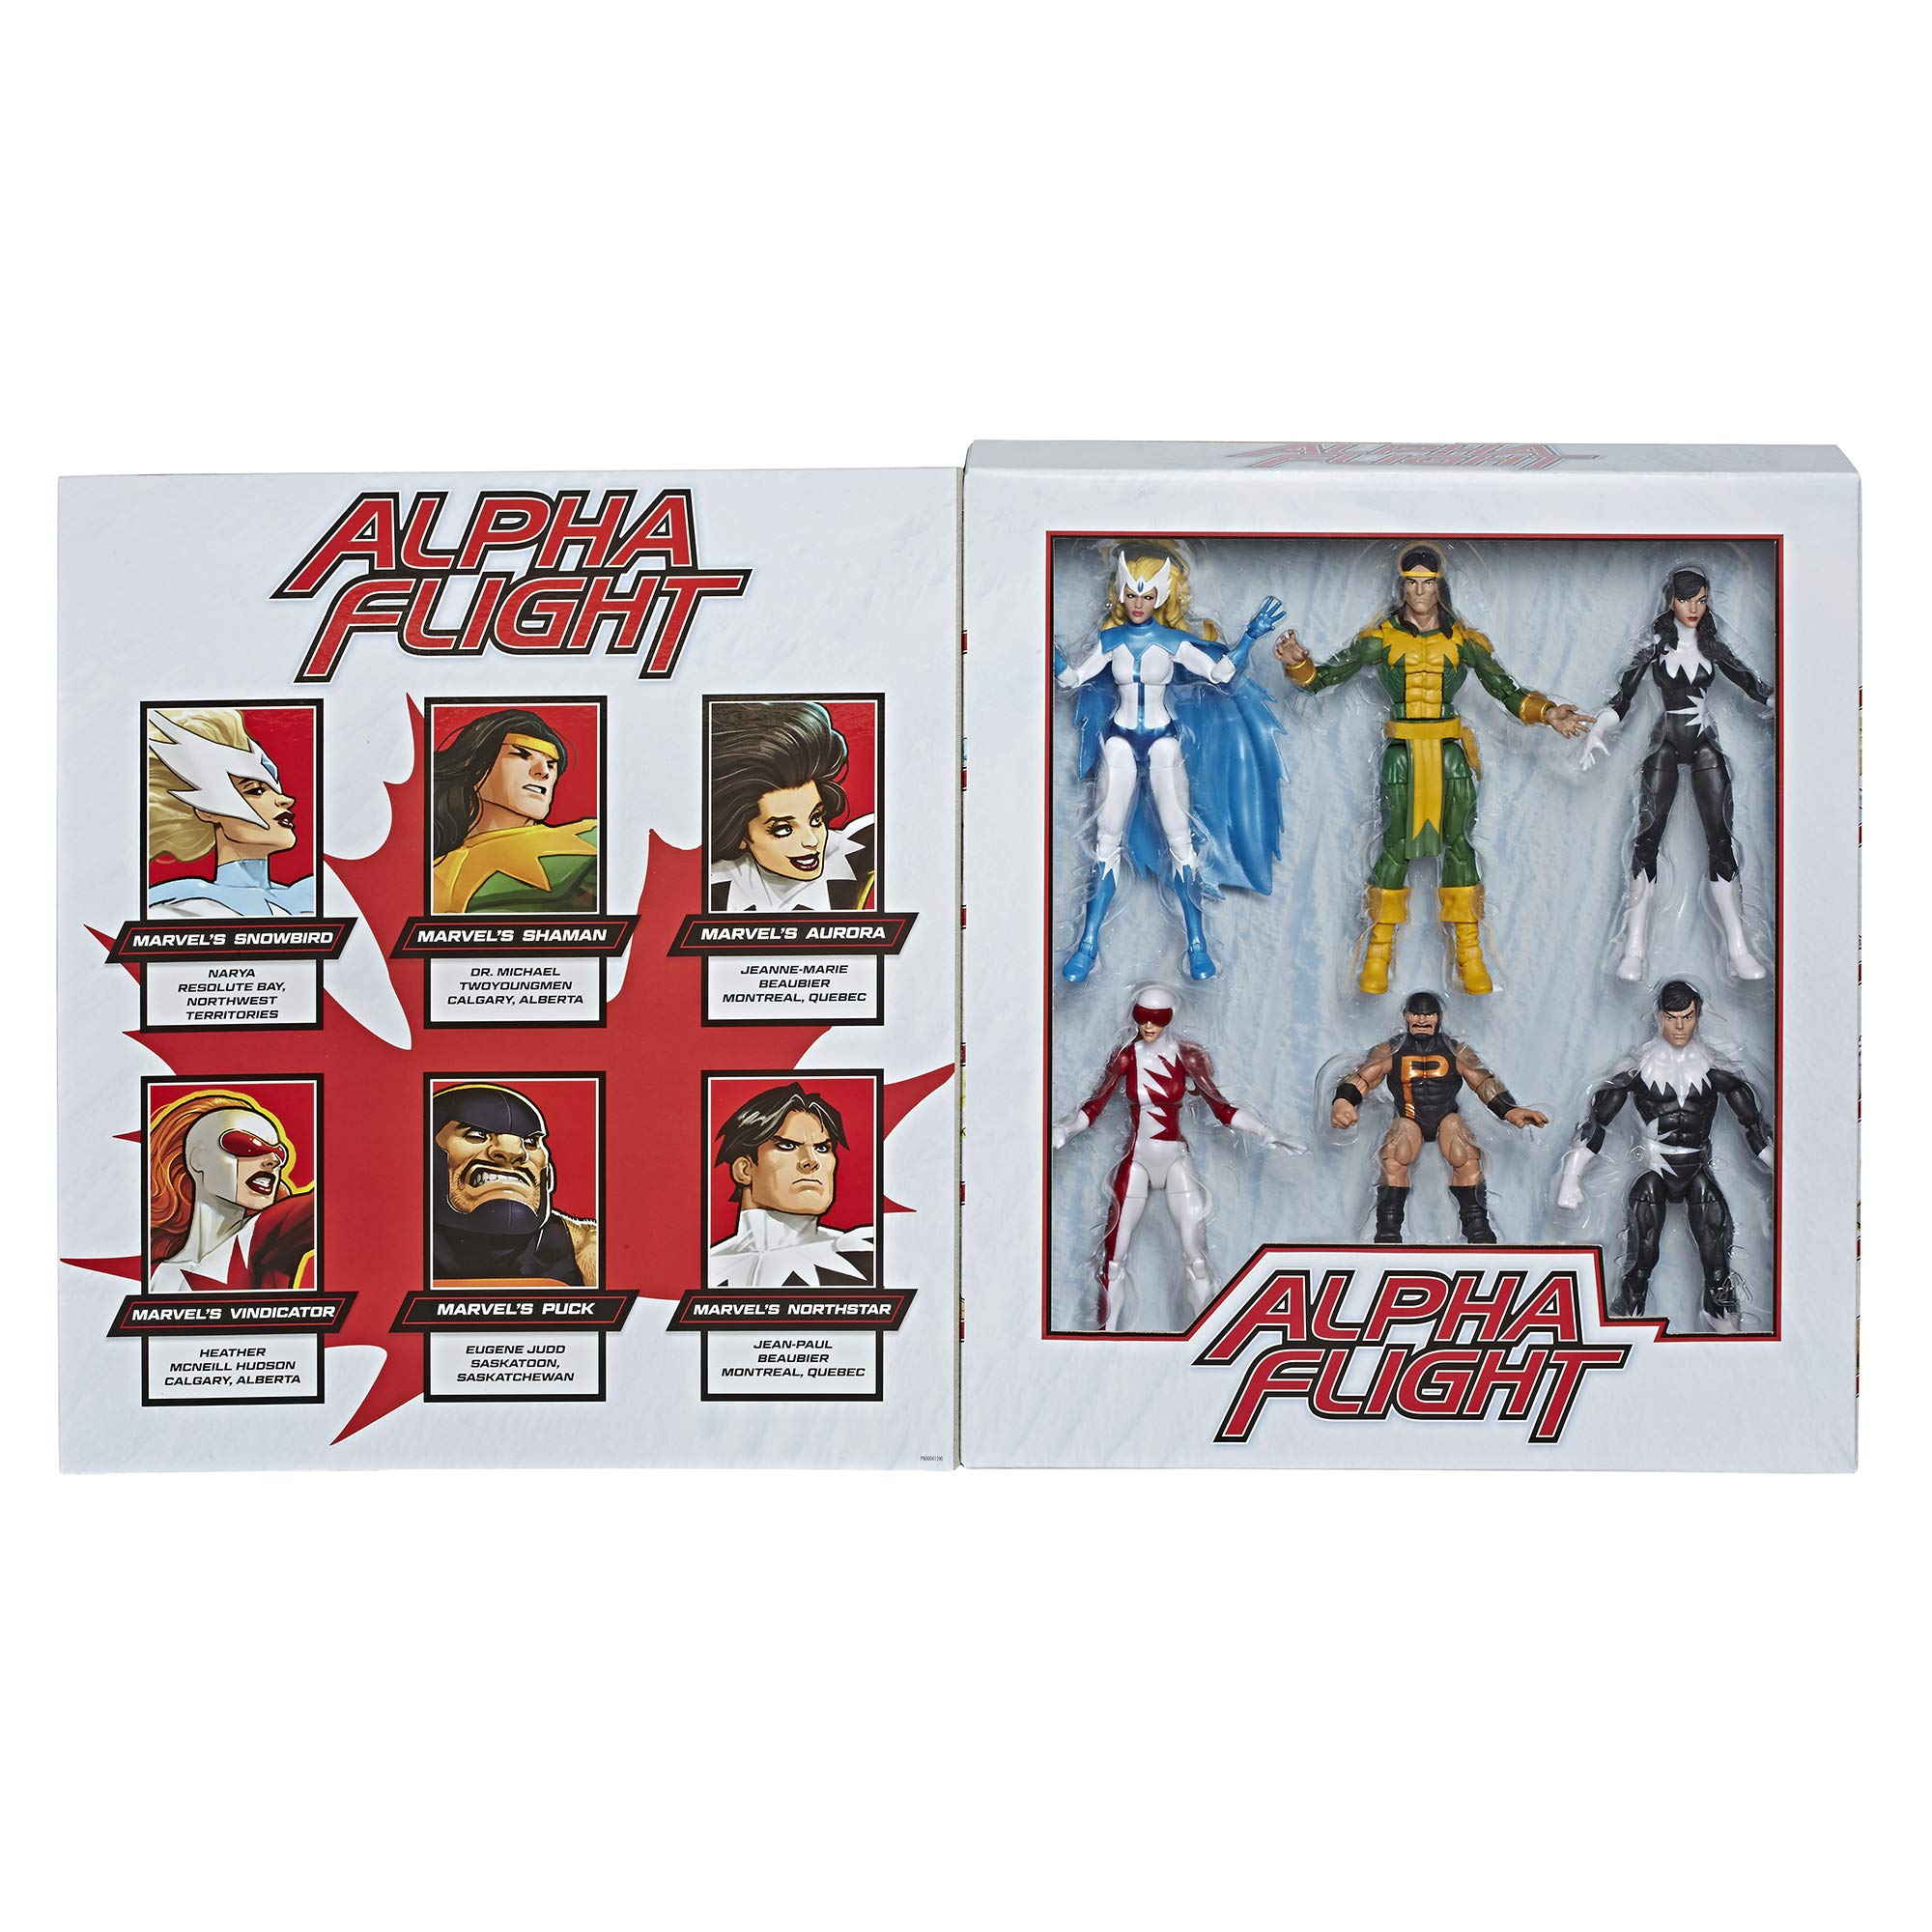 """Marvel Classic Hasbro Legends Series Toys 6"""" Collectible Action 6 Pack Alpha Flight 6 Pack, 6 Figures with Premium Design, for Kids Ages 4 & Up (Amazon Exclusive)"""